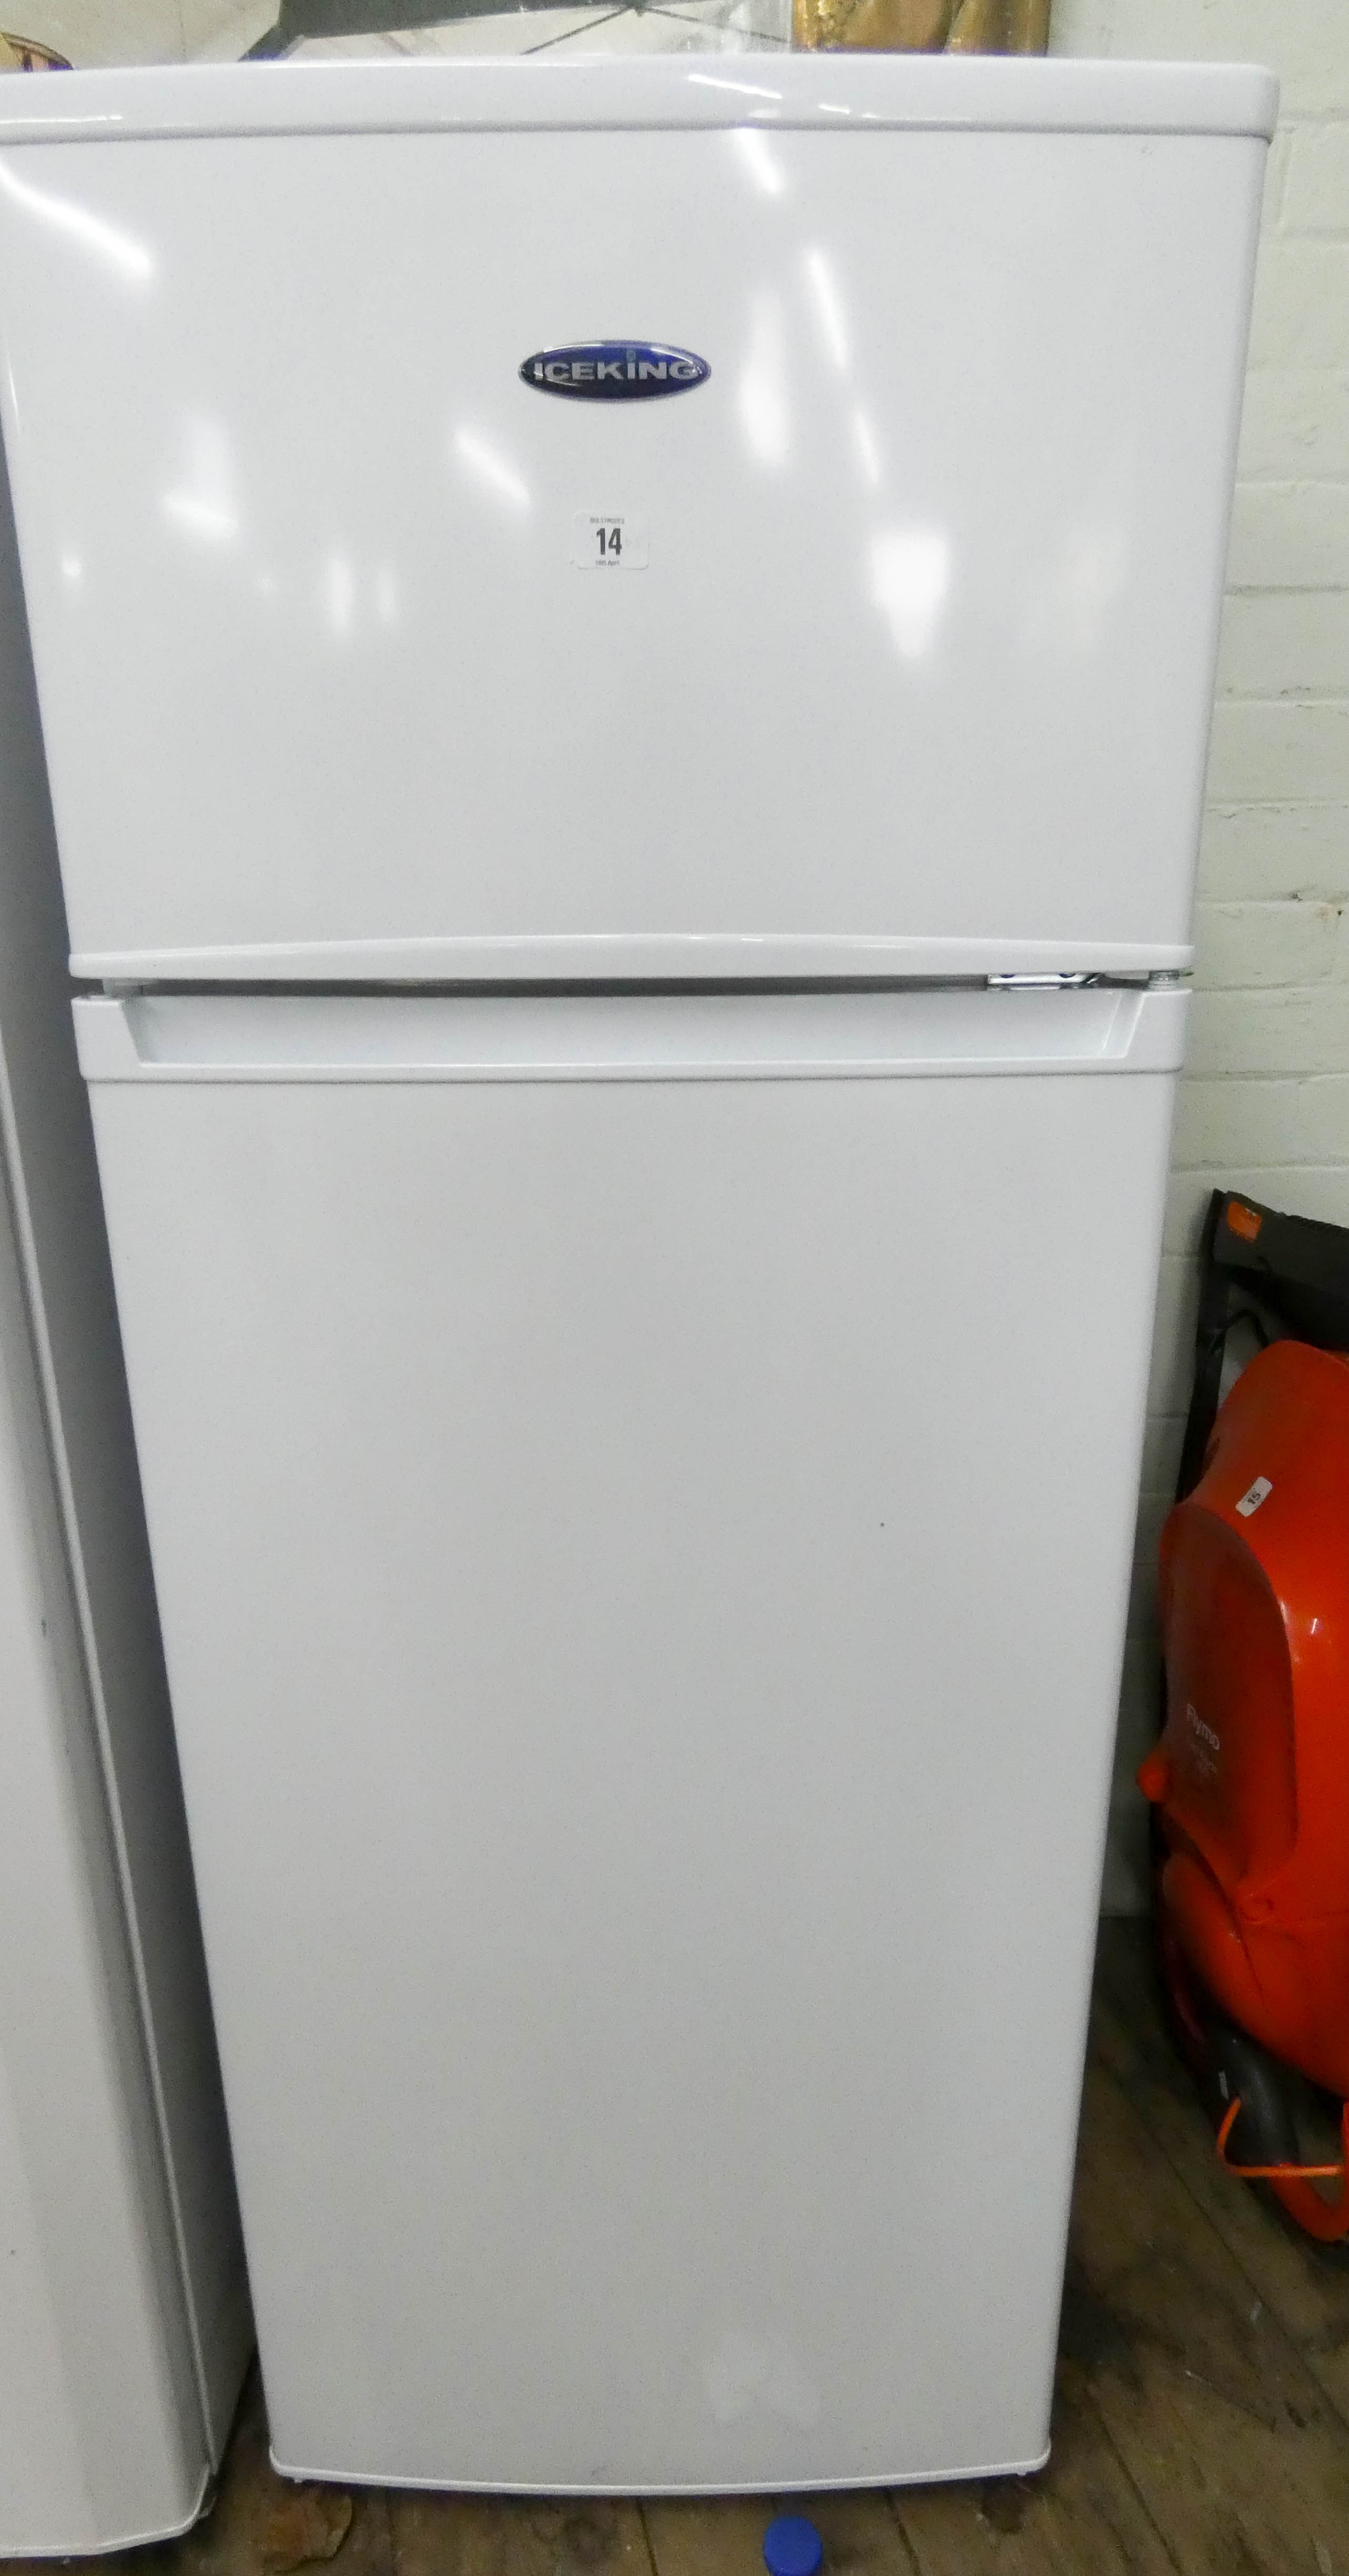 Lot 14 - An ice King fridge freezer with small freezer compartment on top